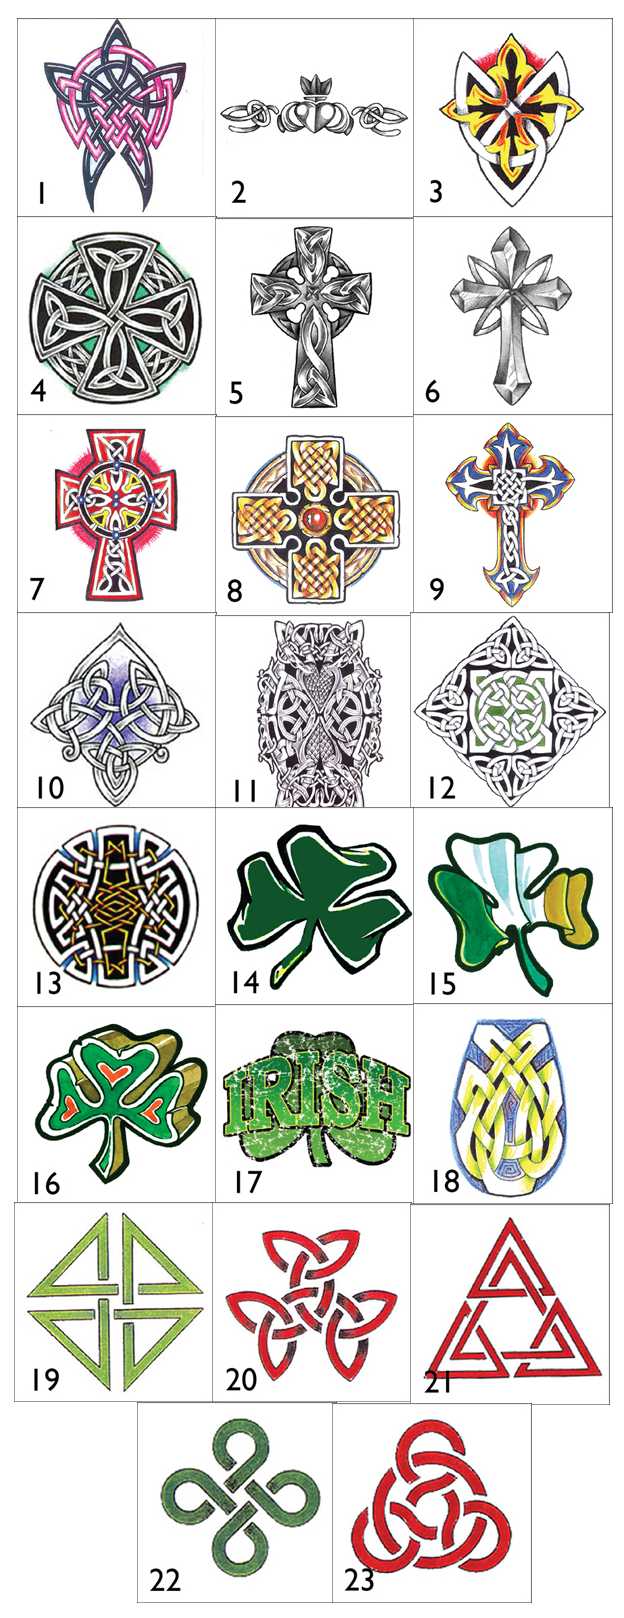 Irish Celtic Symbols And Their Meanings Irish celtic ...